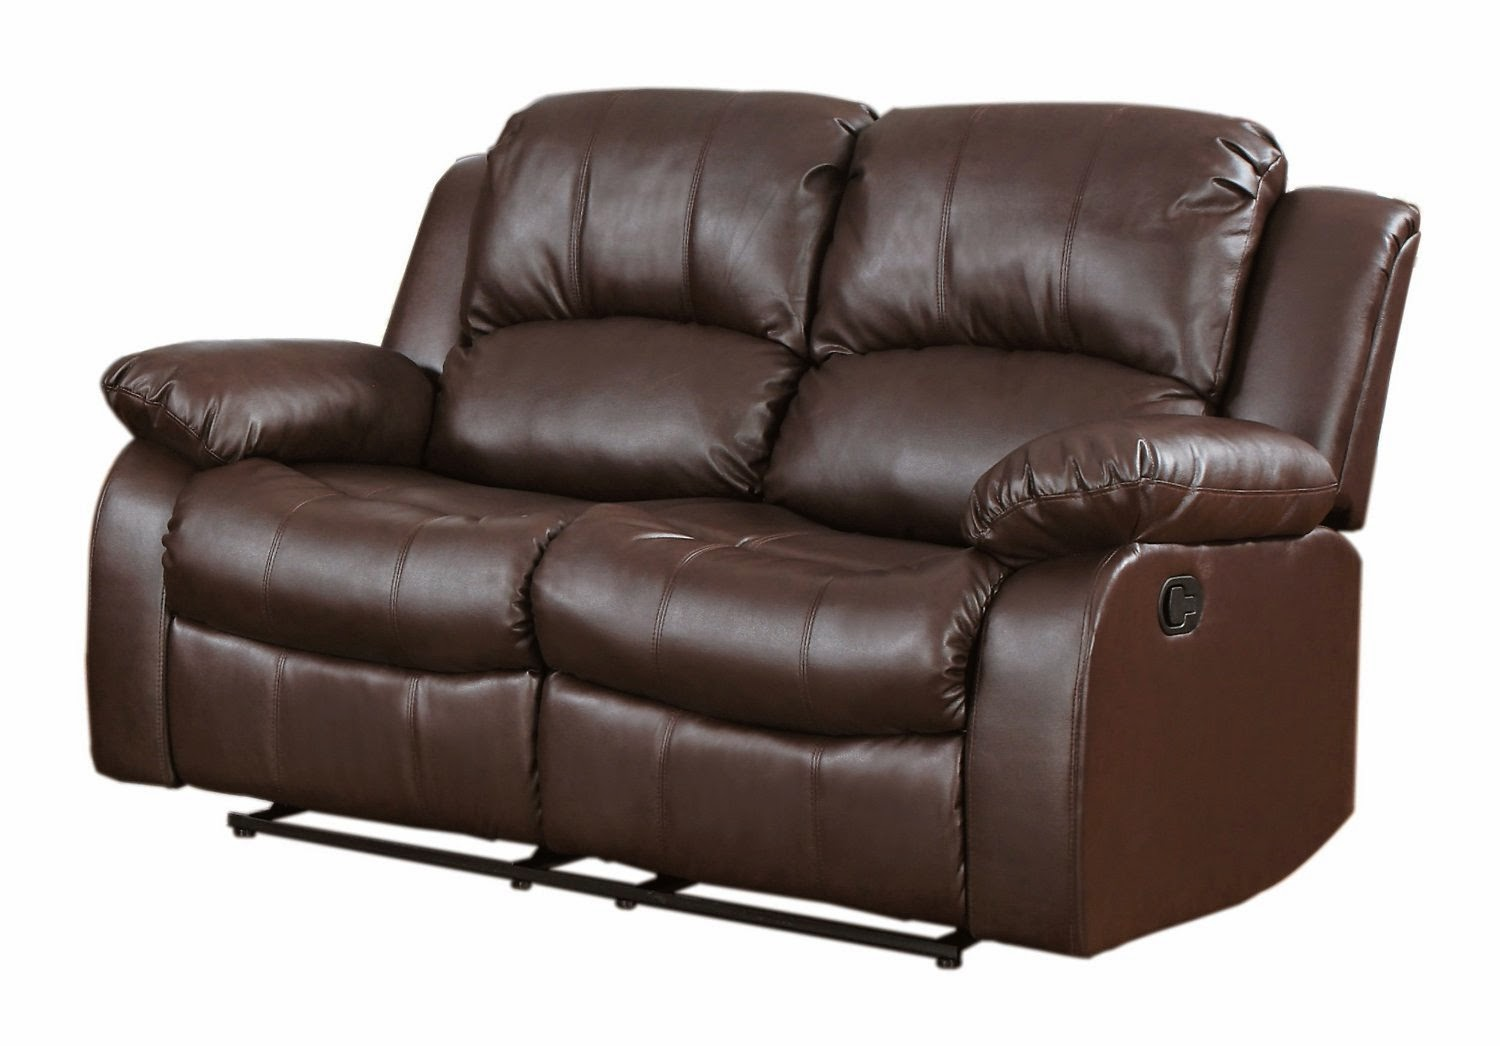 Where is the best place to buy recliner sofa 2 seater electric recliner leather sofa Leather reclining sofa loveseat